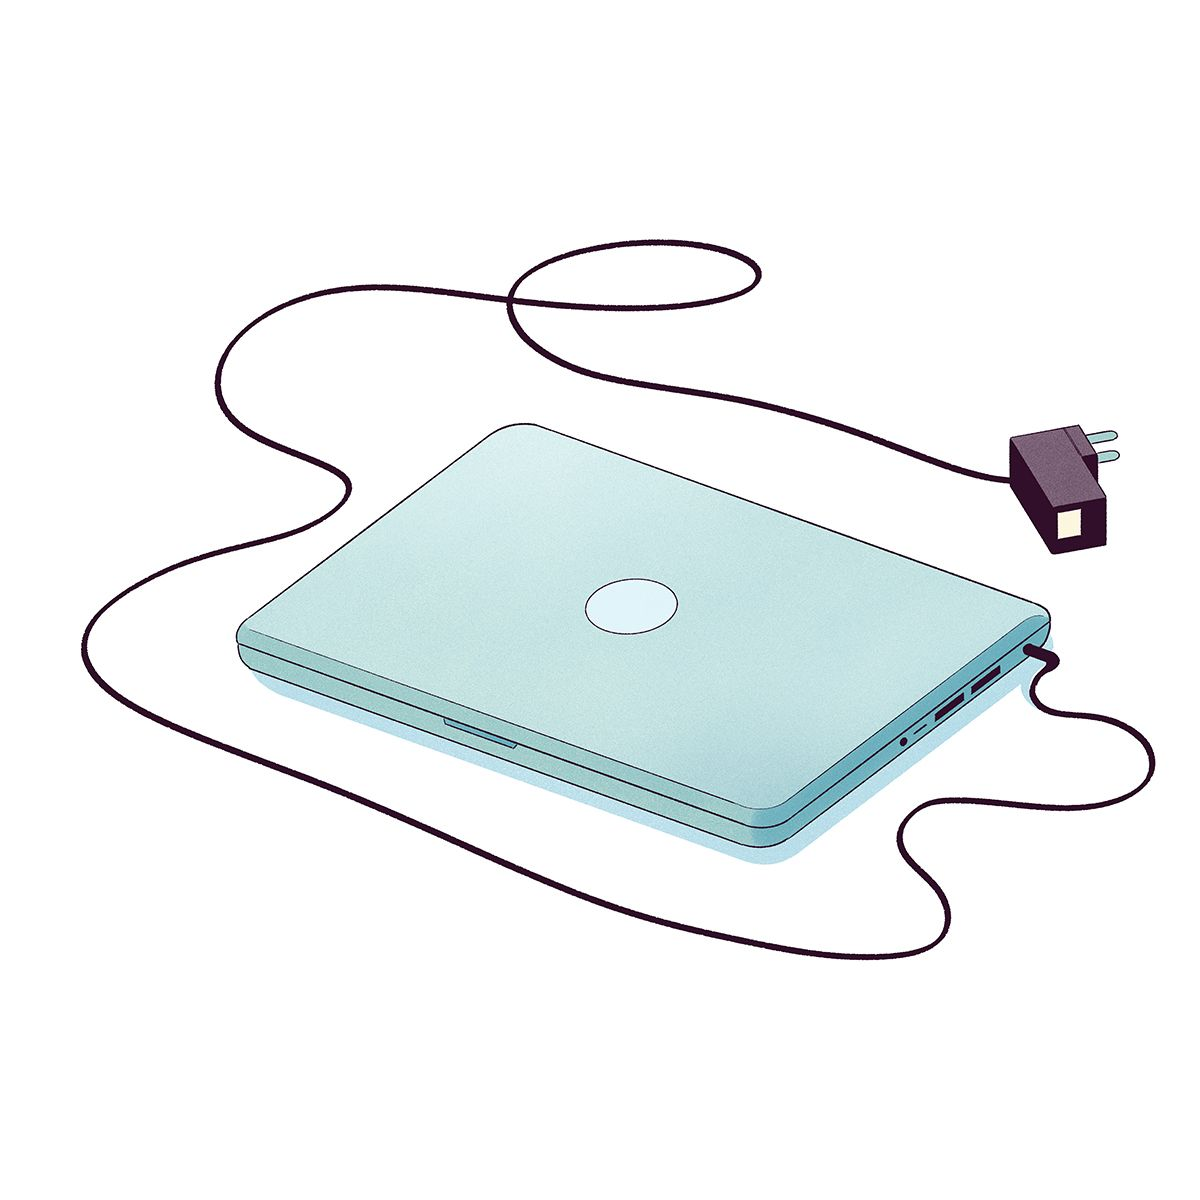 Illustration of a closed laptop with charger.